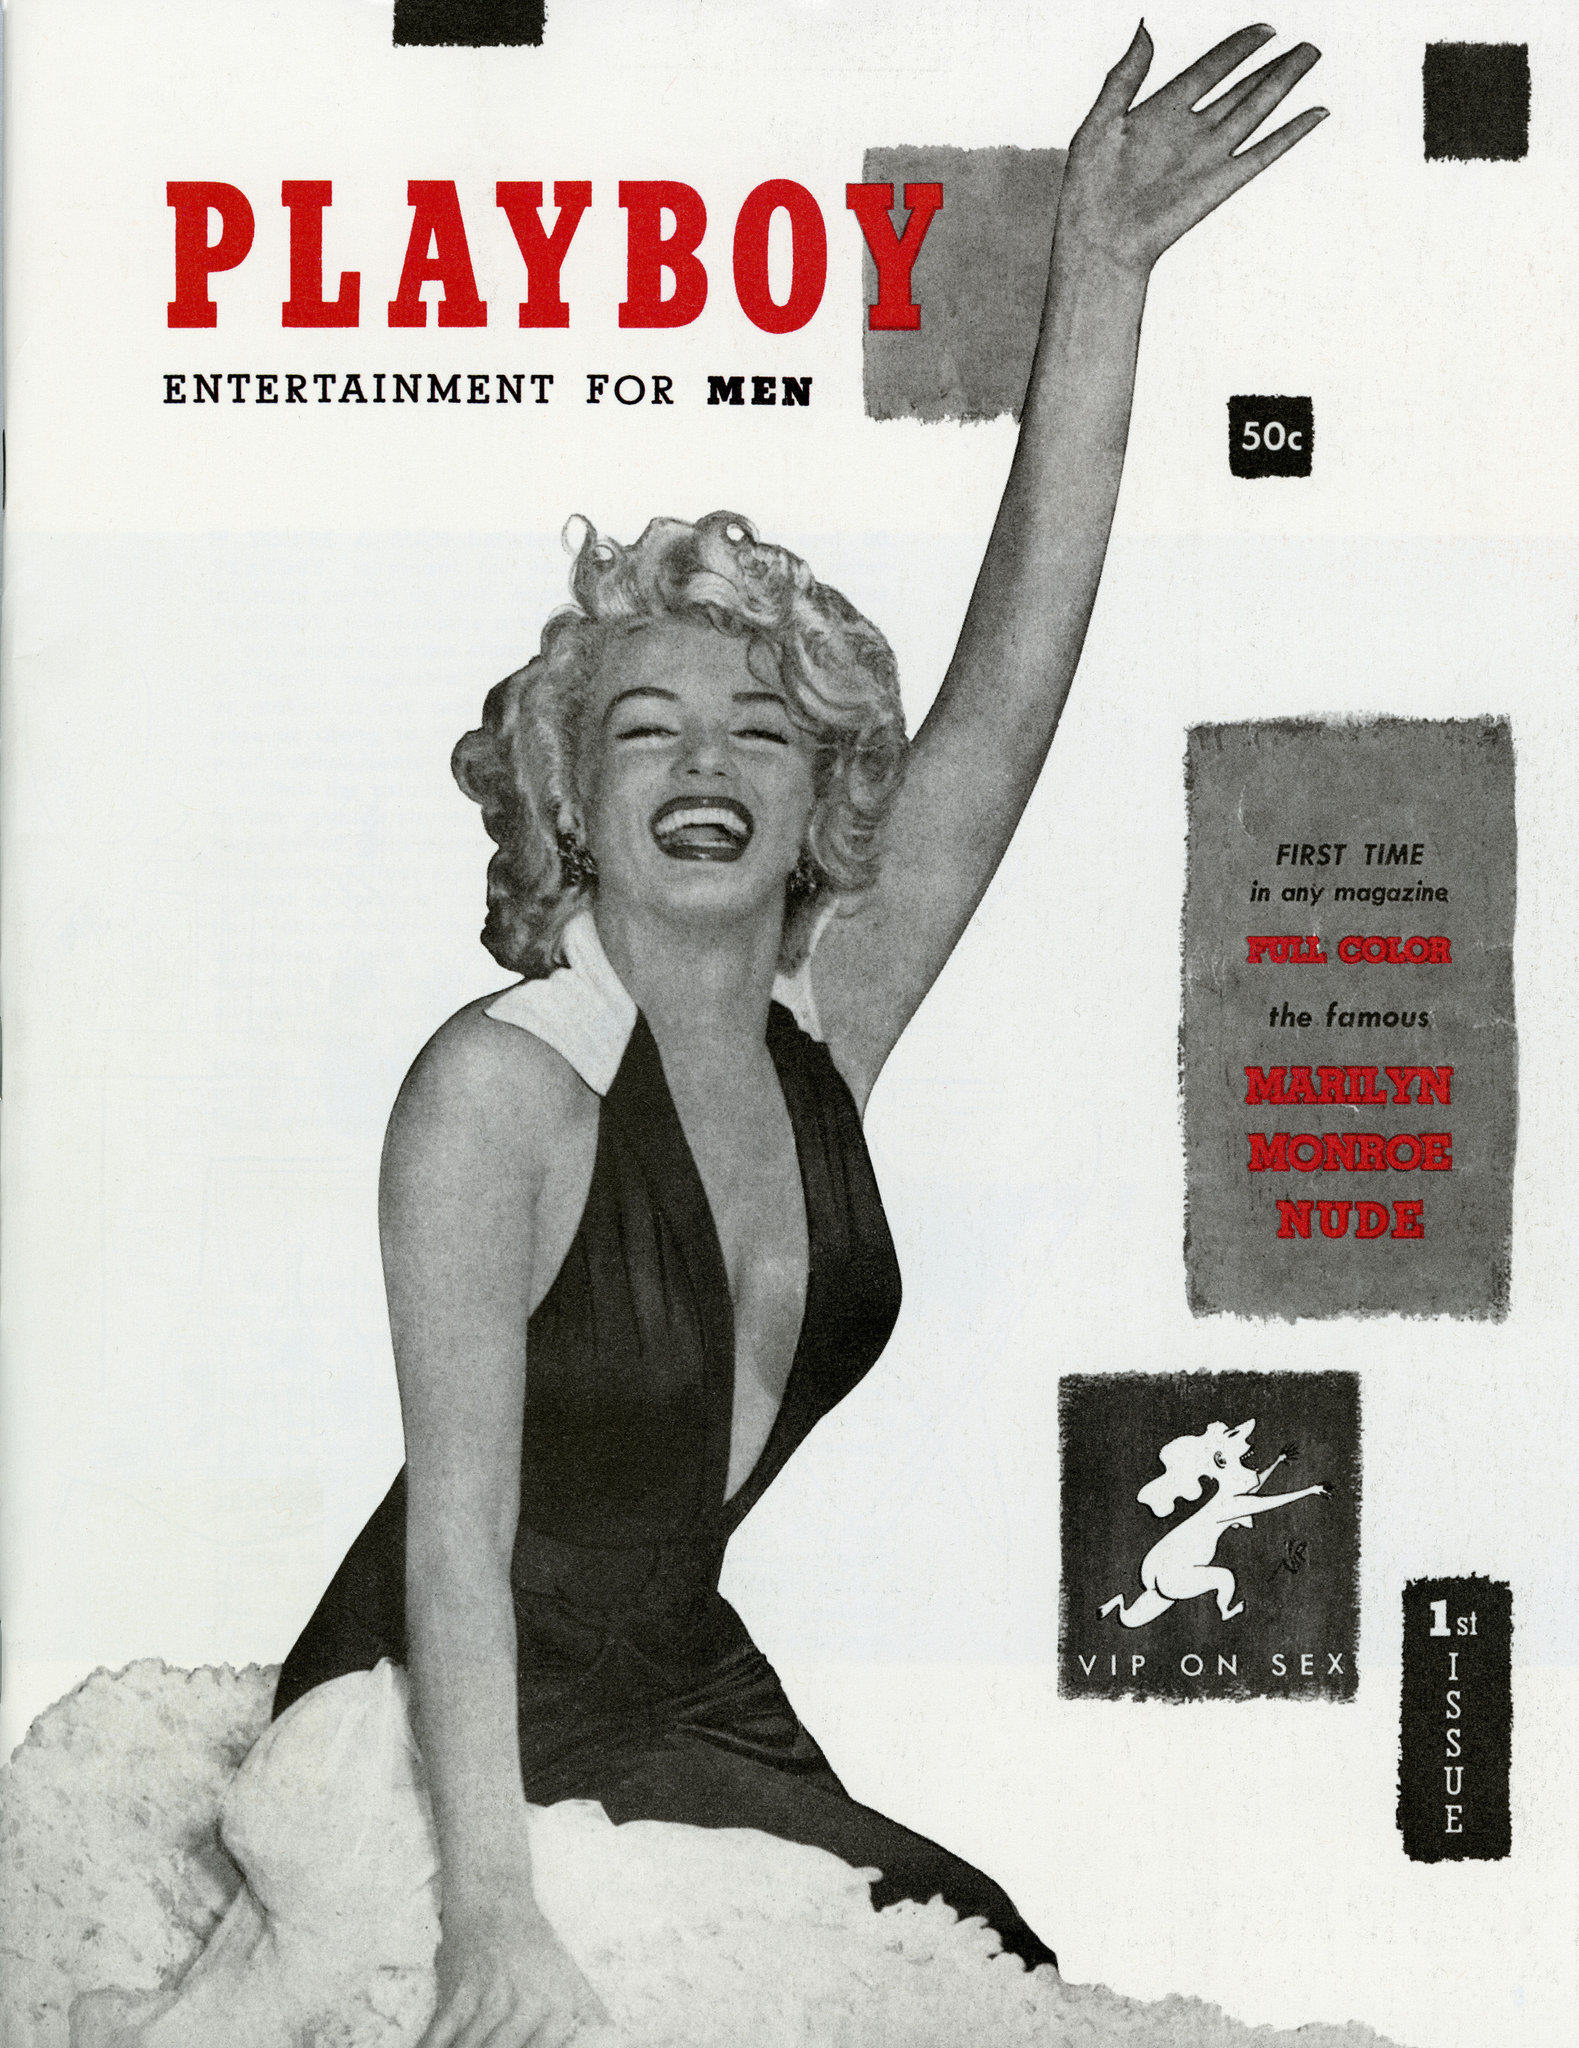 UNILAD Playboys 1953 debut featuring Marilyn Monroe6 Here Are The 10 Most Iconic Playboy Centrefolds